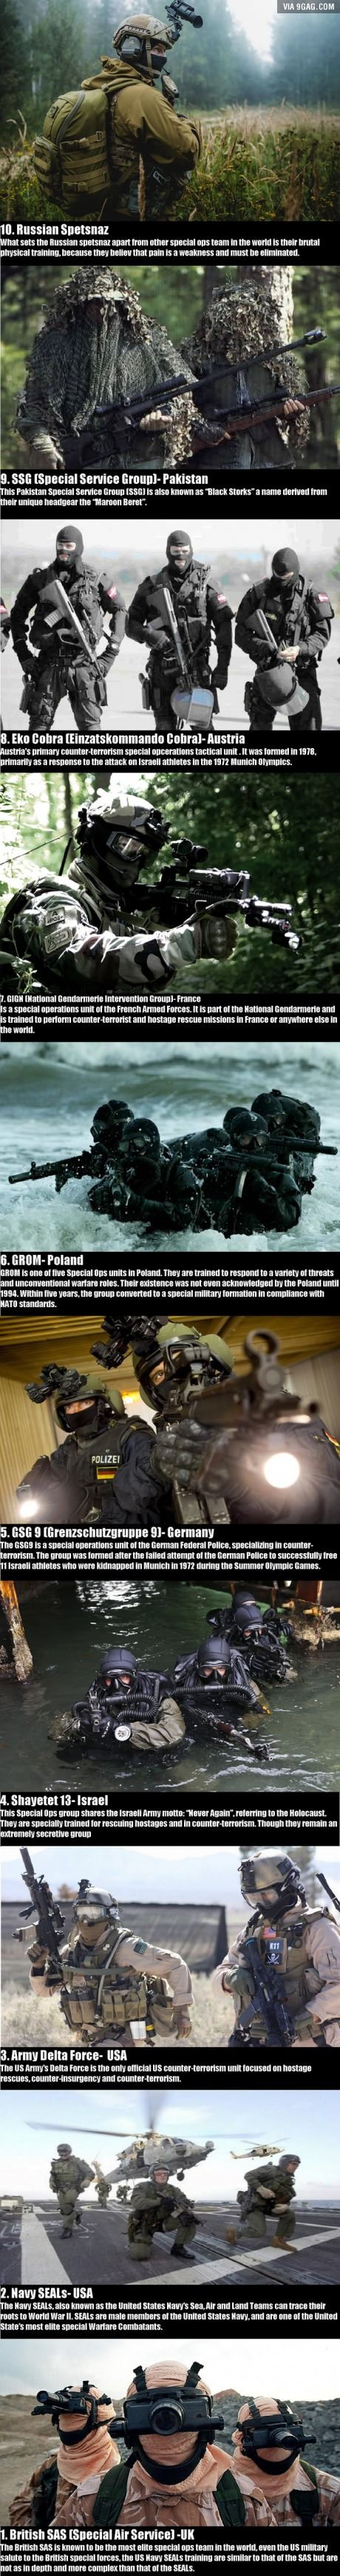 Top Ten Special ops team in the world. However I don't agree with the order, nor can I say one is better then the other. All the units have there legends and bad dudes. Simple cool to know